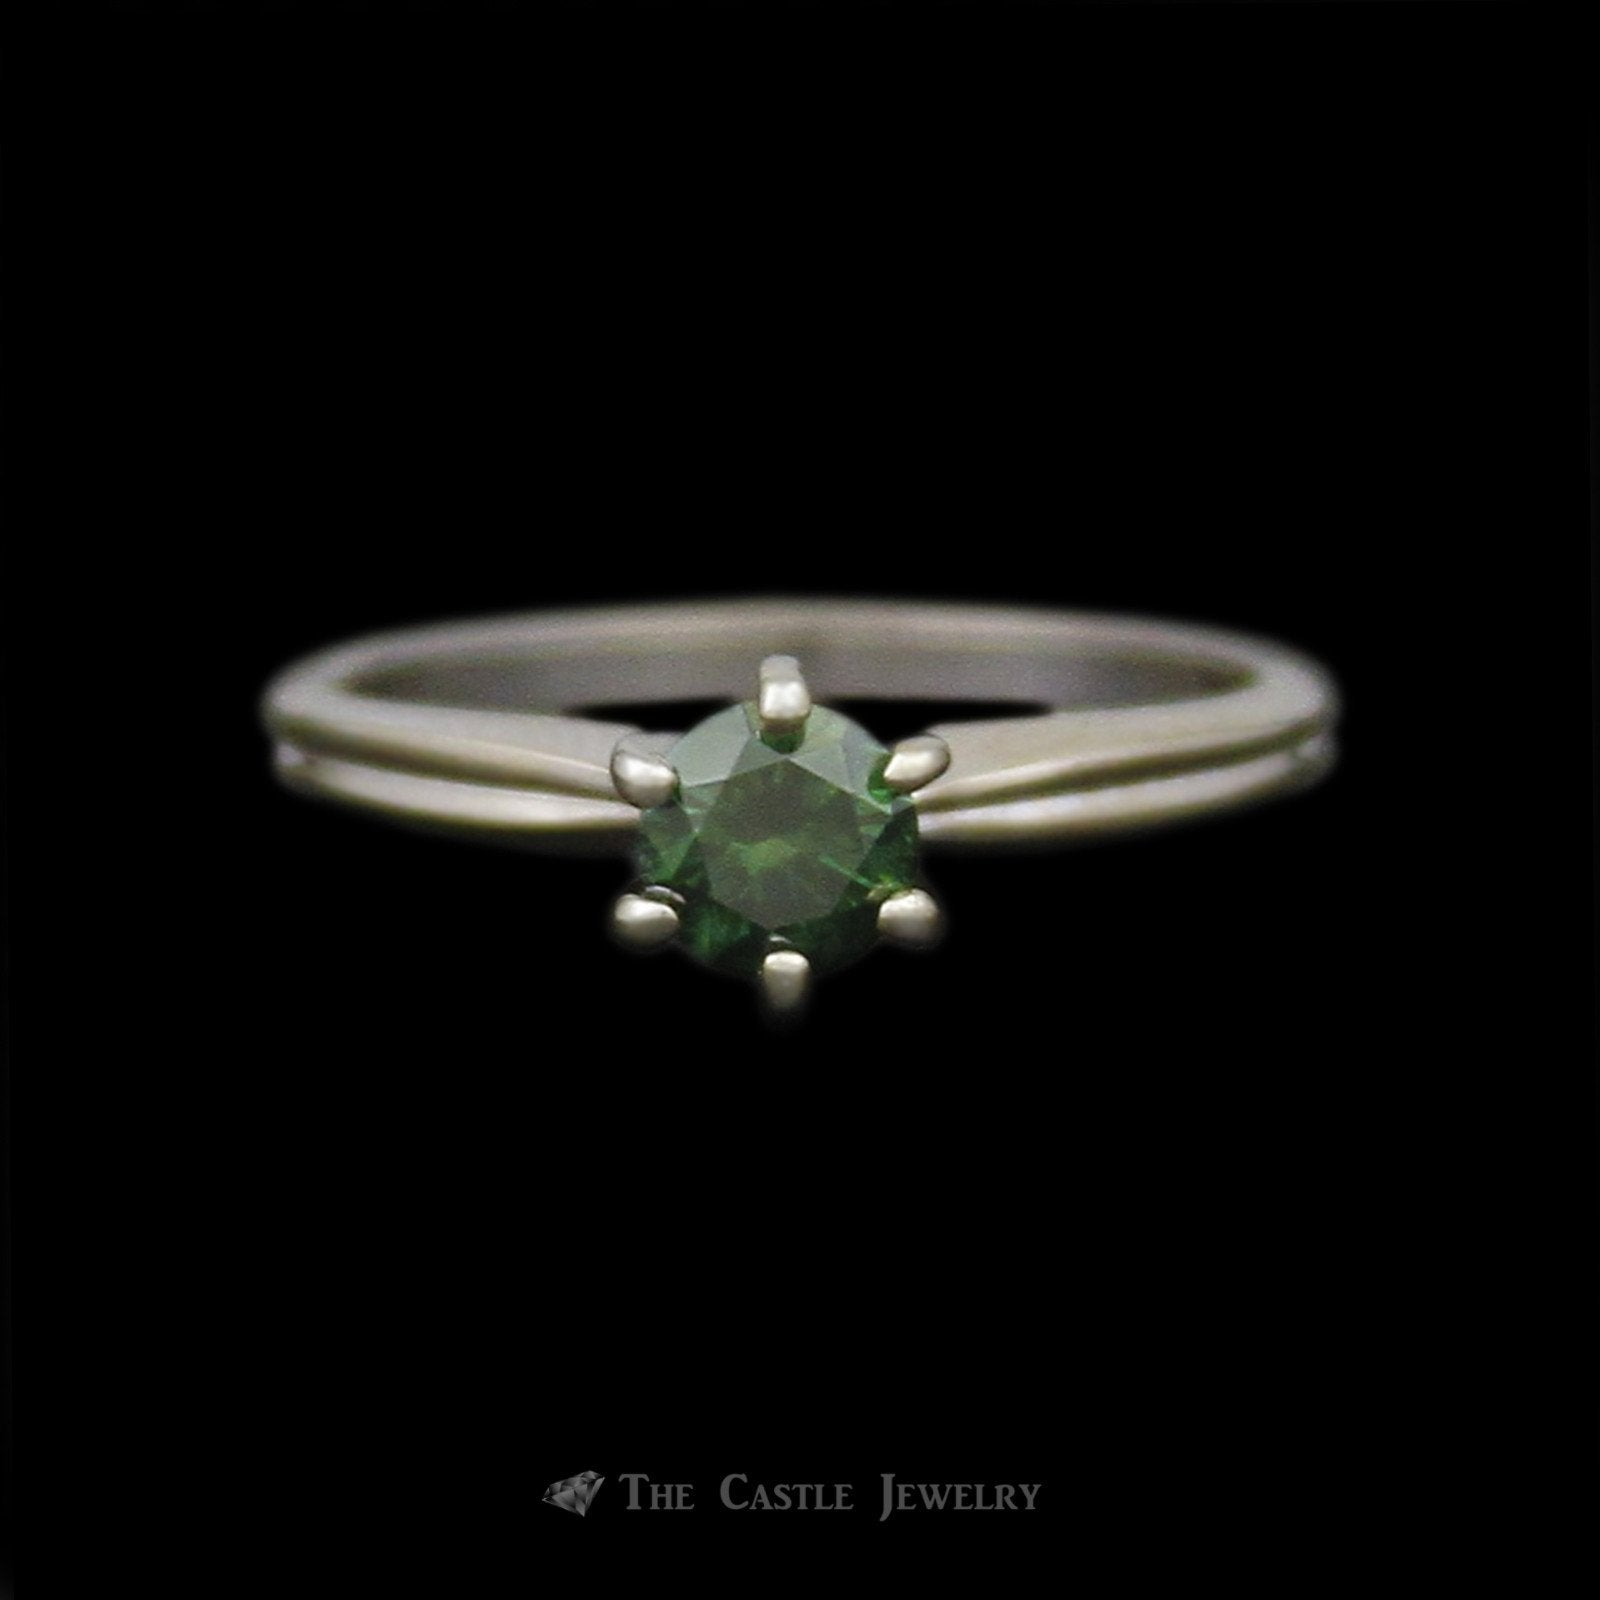 Round Color Treated Green Diamond Solitaire Engagement Ring in Tiffany Mount